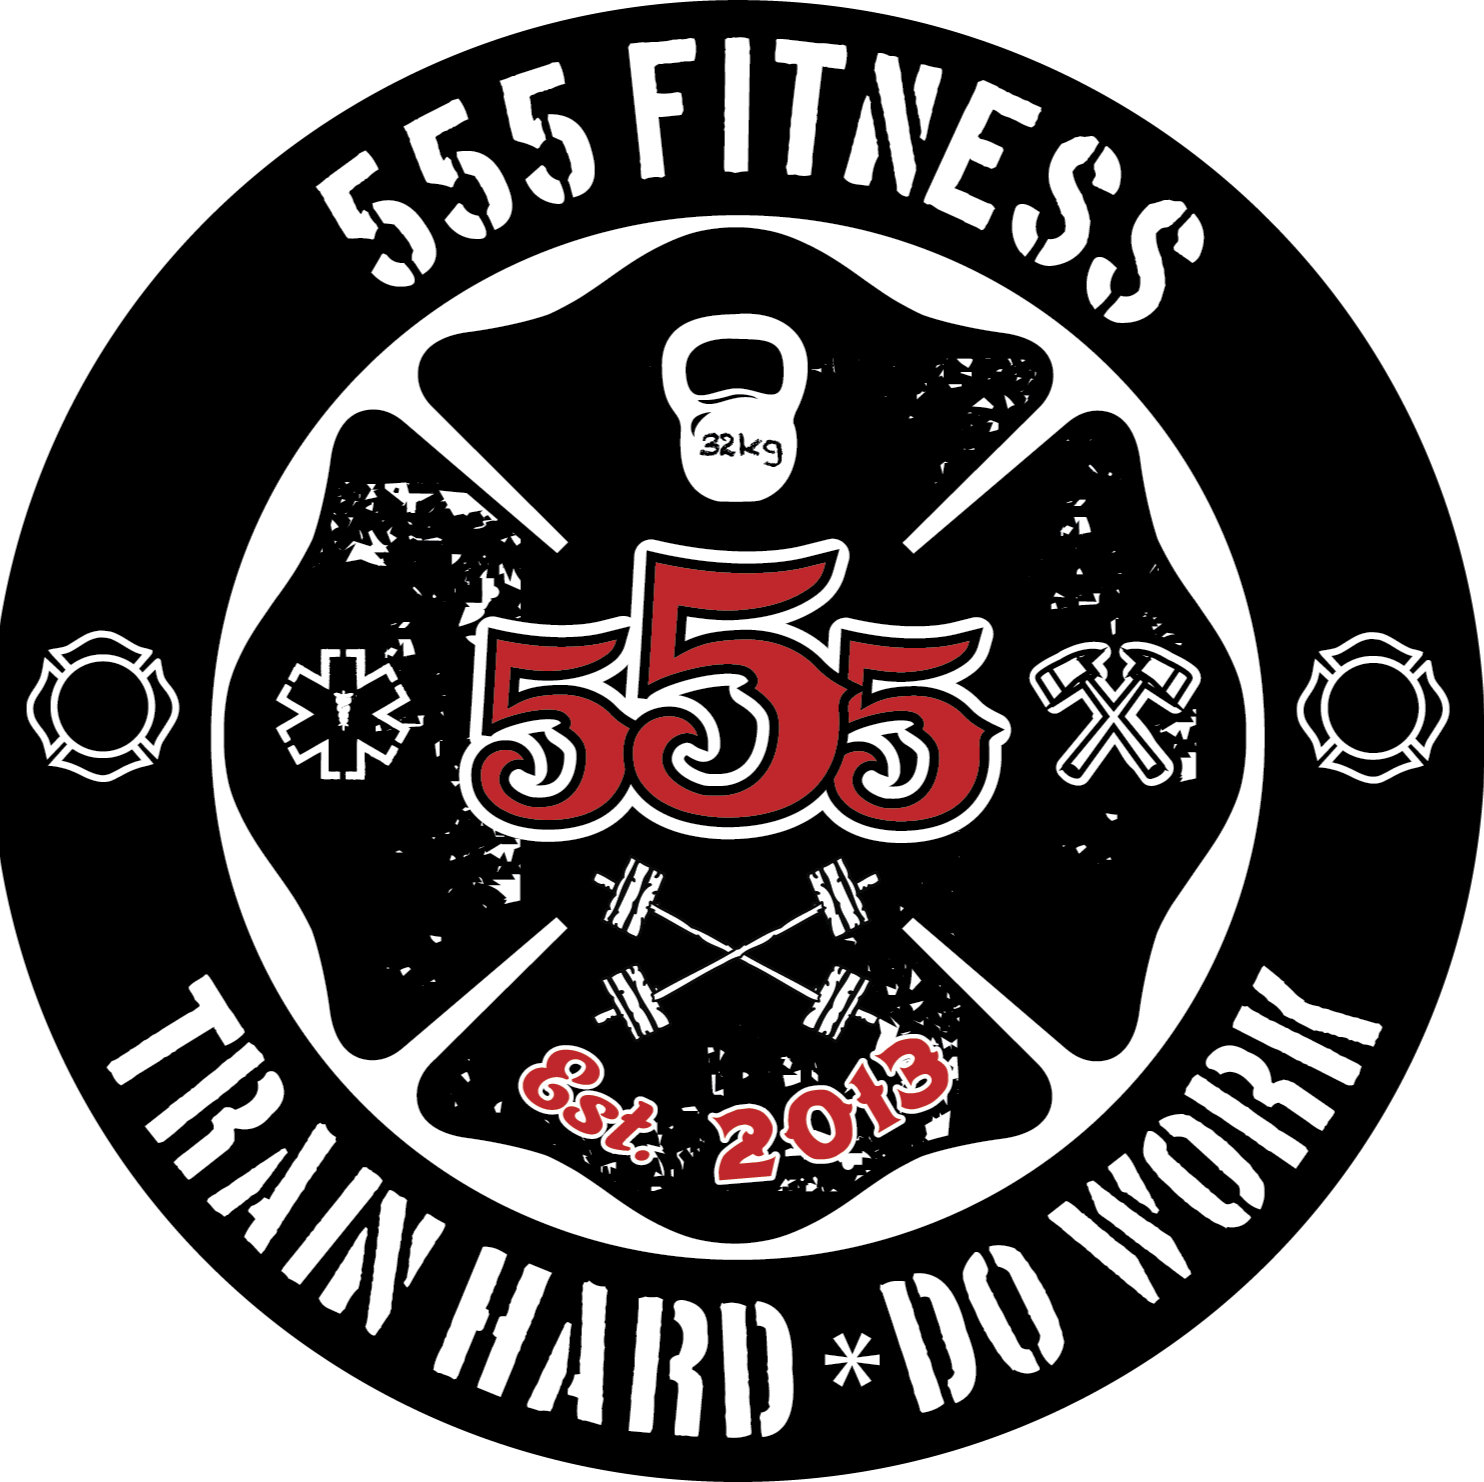 555 Firefighter Fitness Inc